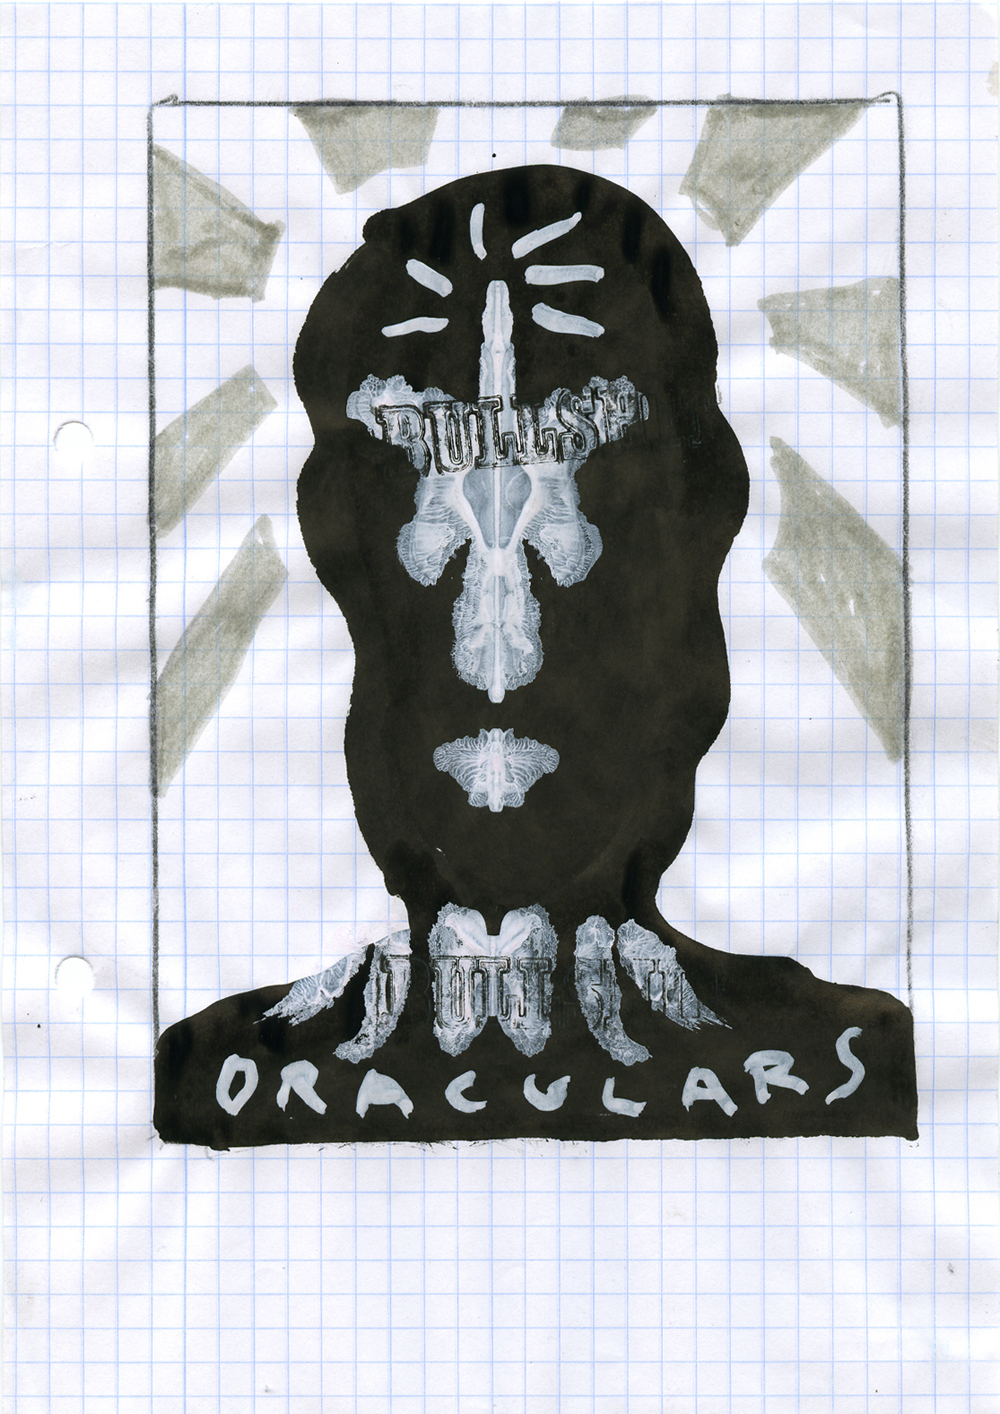 Paper_Oraculars_20,5x14,5cm_Ink, gouache, pen, stamp_2004